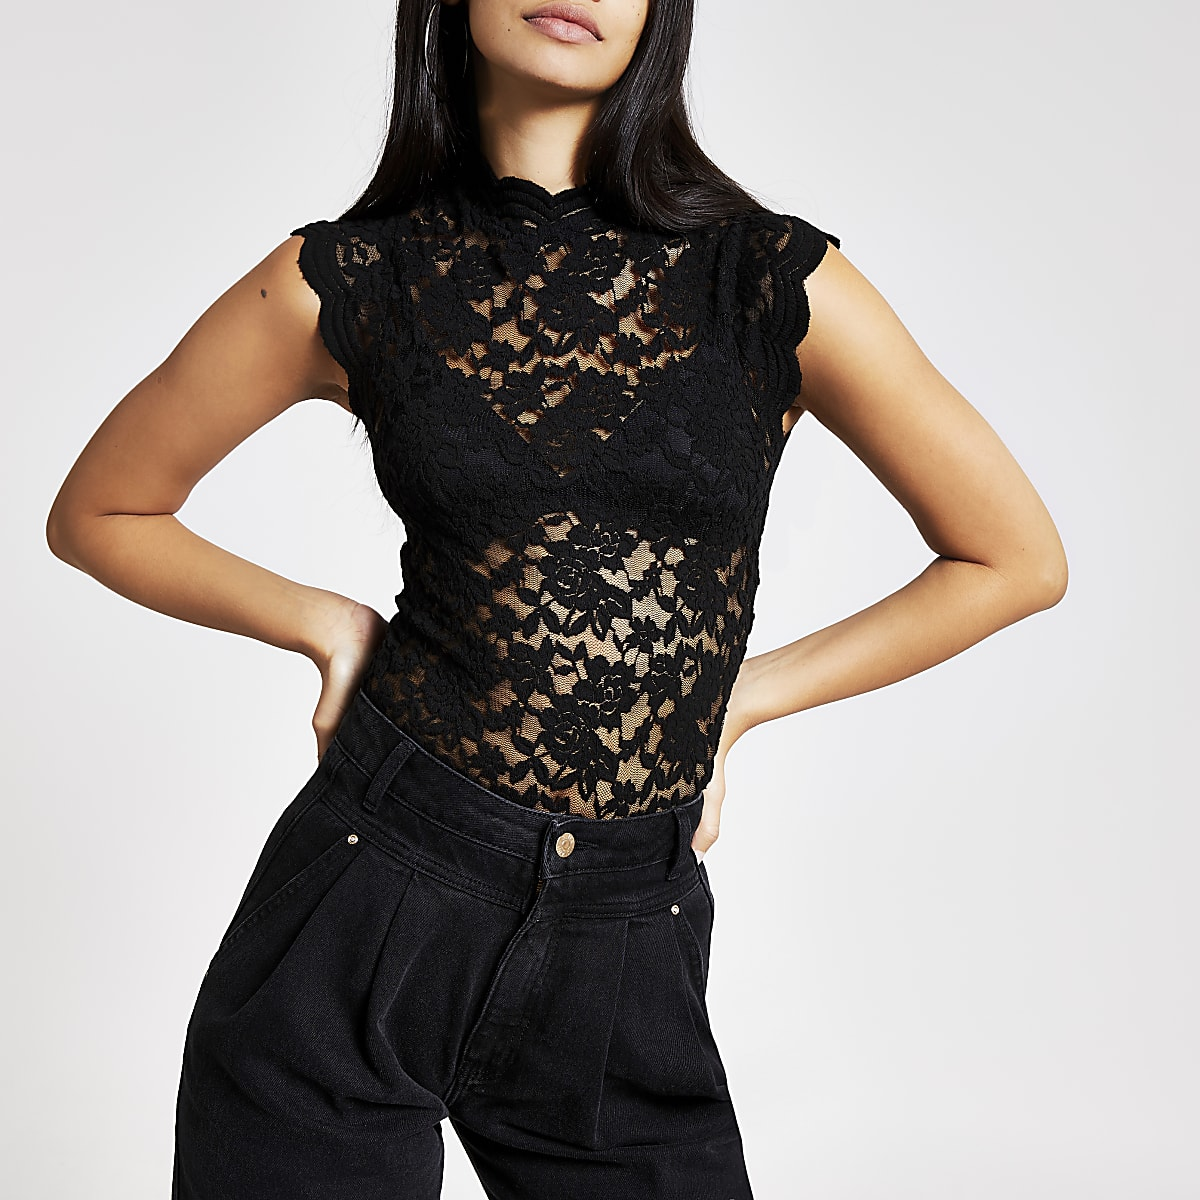 a2779ad1fba979 Black lace high neck top - Cami / Sleeveless Tops - Tops - women